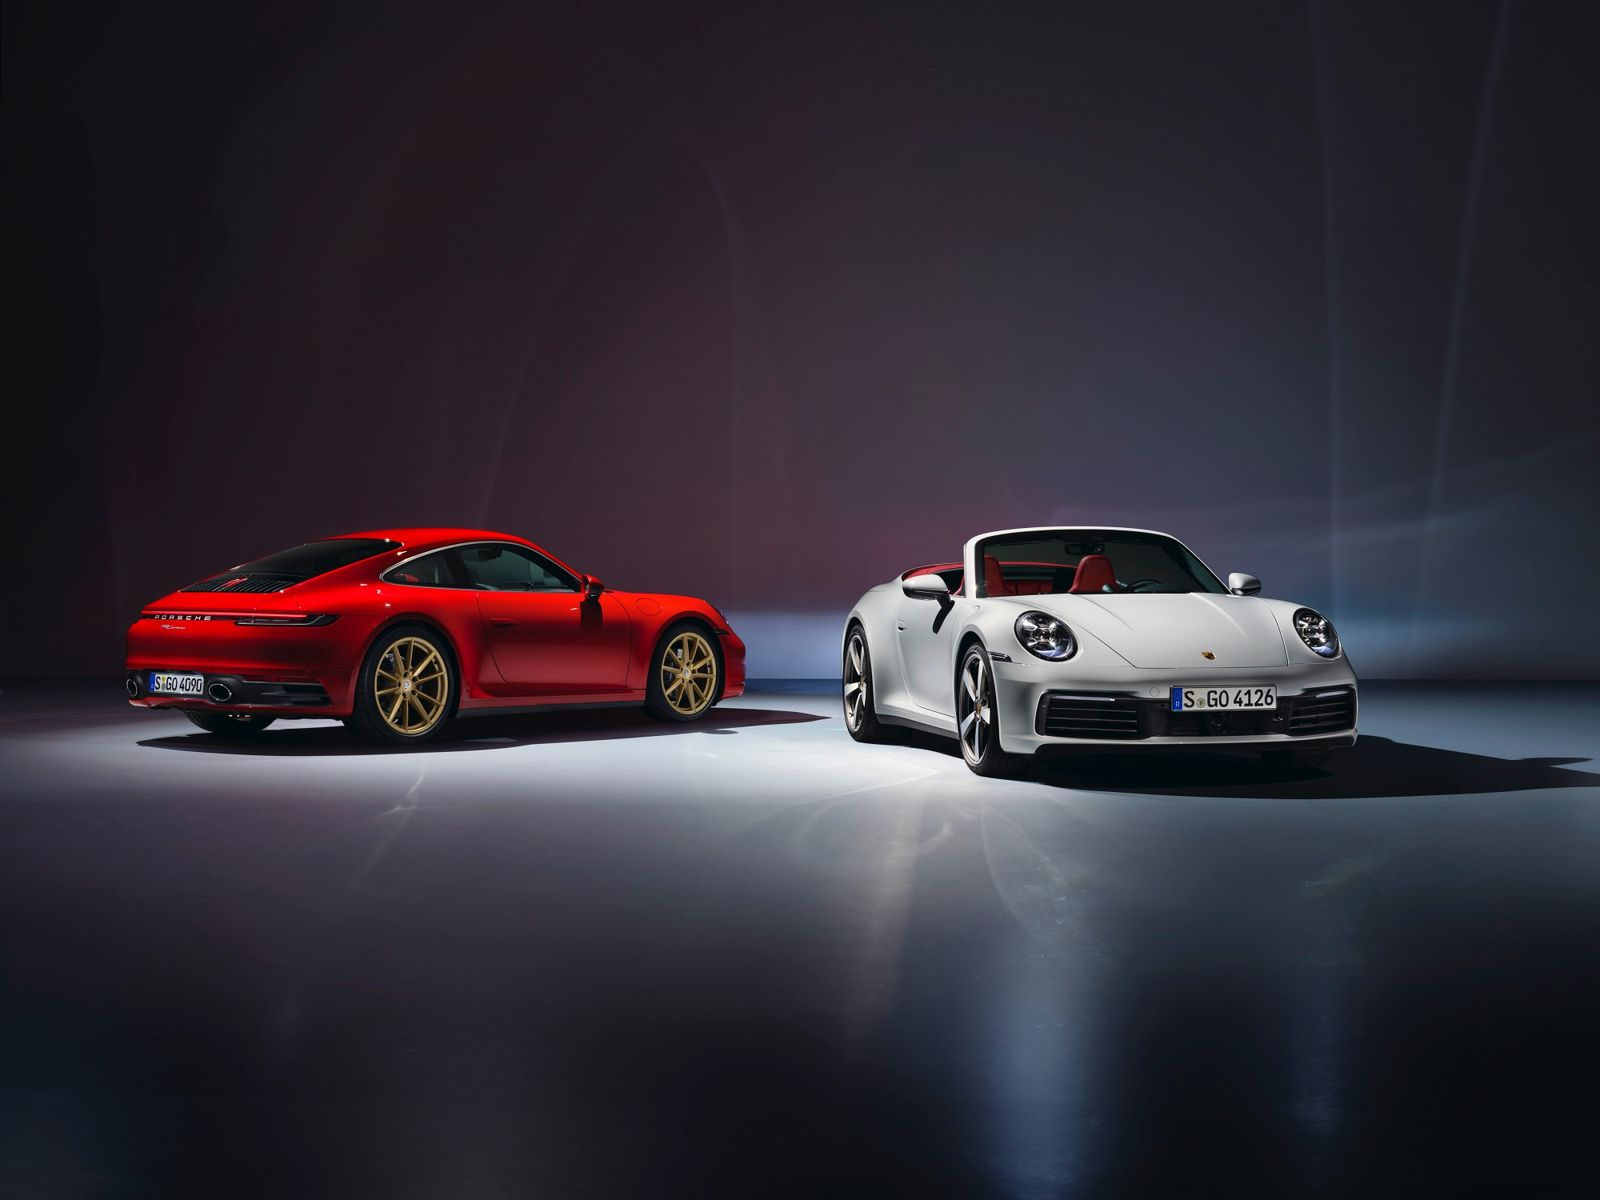 Porsche introduces the new 911 Carrera Coupe and 911 Carrera Cabriolet